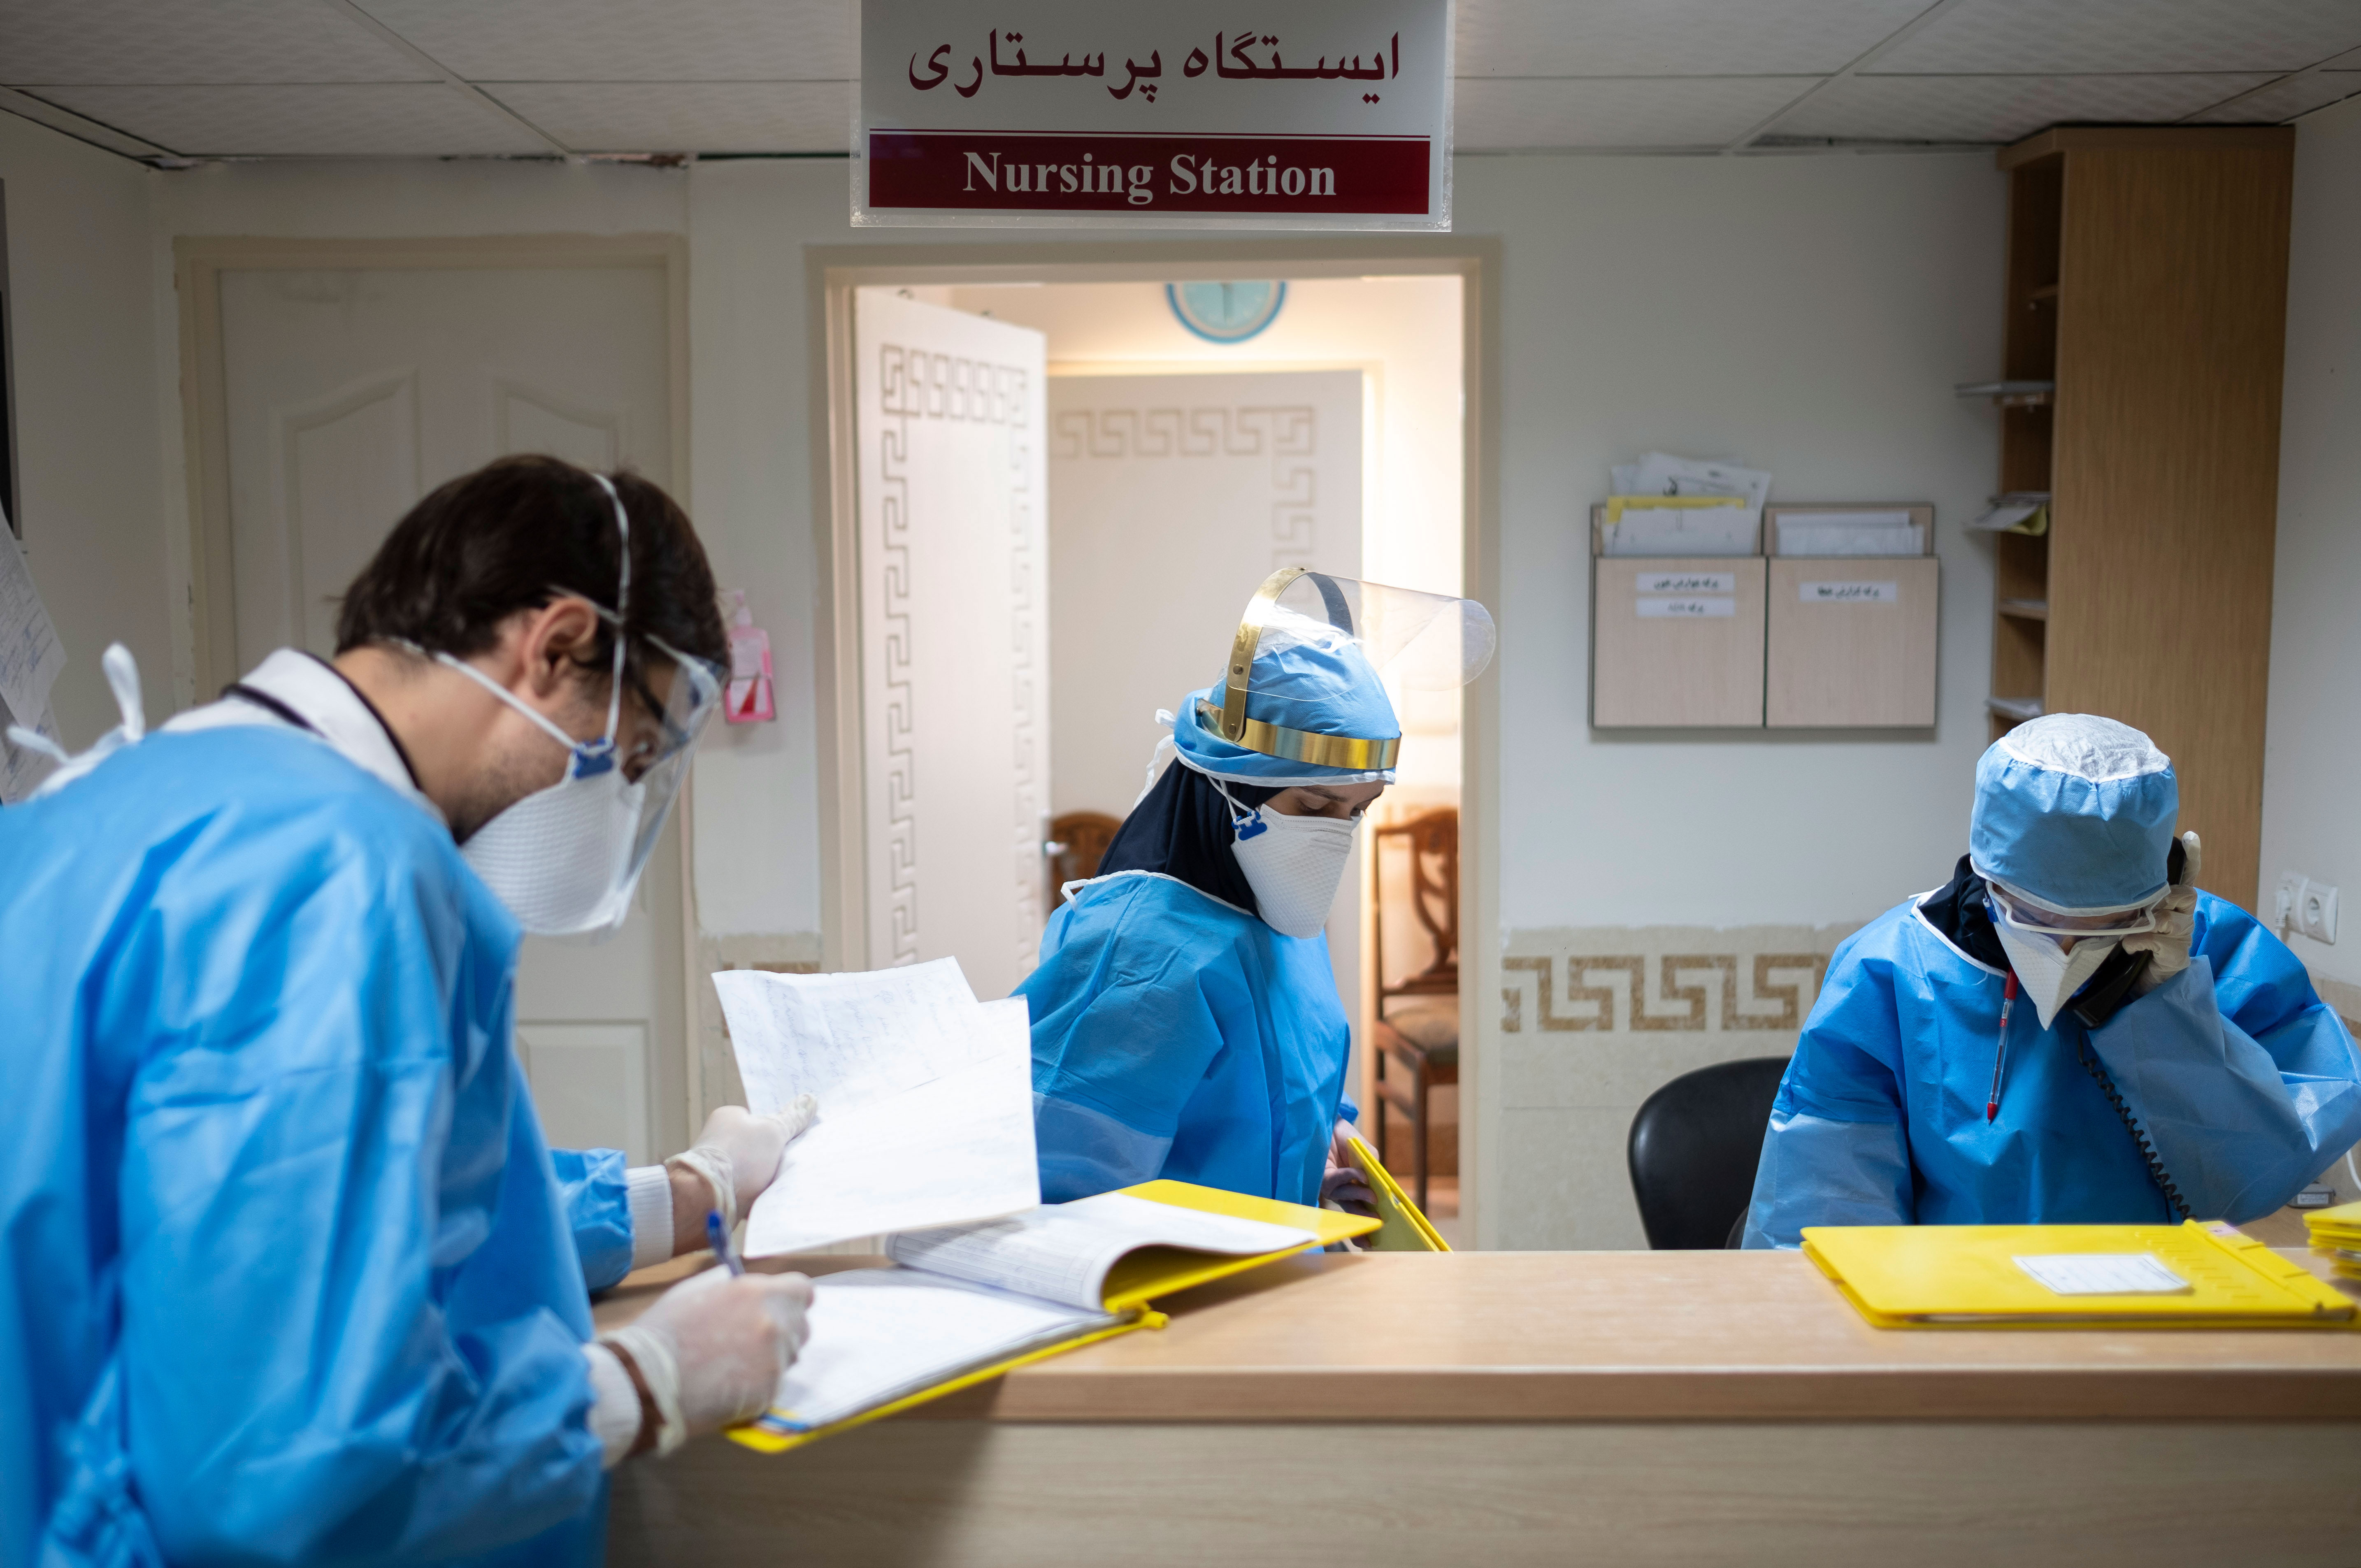 Medical personnel in Tehran, Iran, work in the Covid-19 section of the Ali Asghar Children's Hospital on September 6.